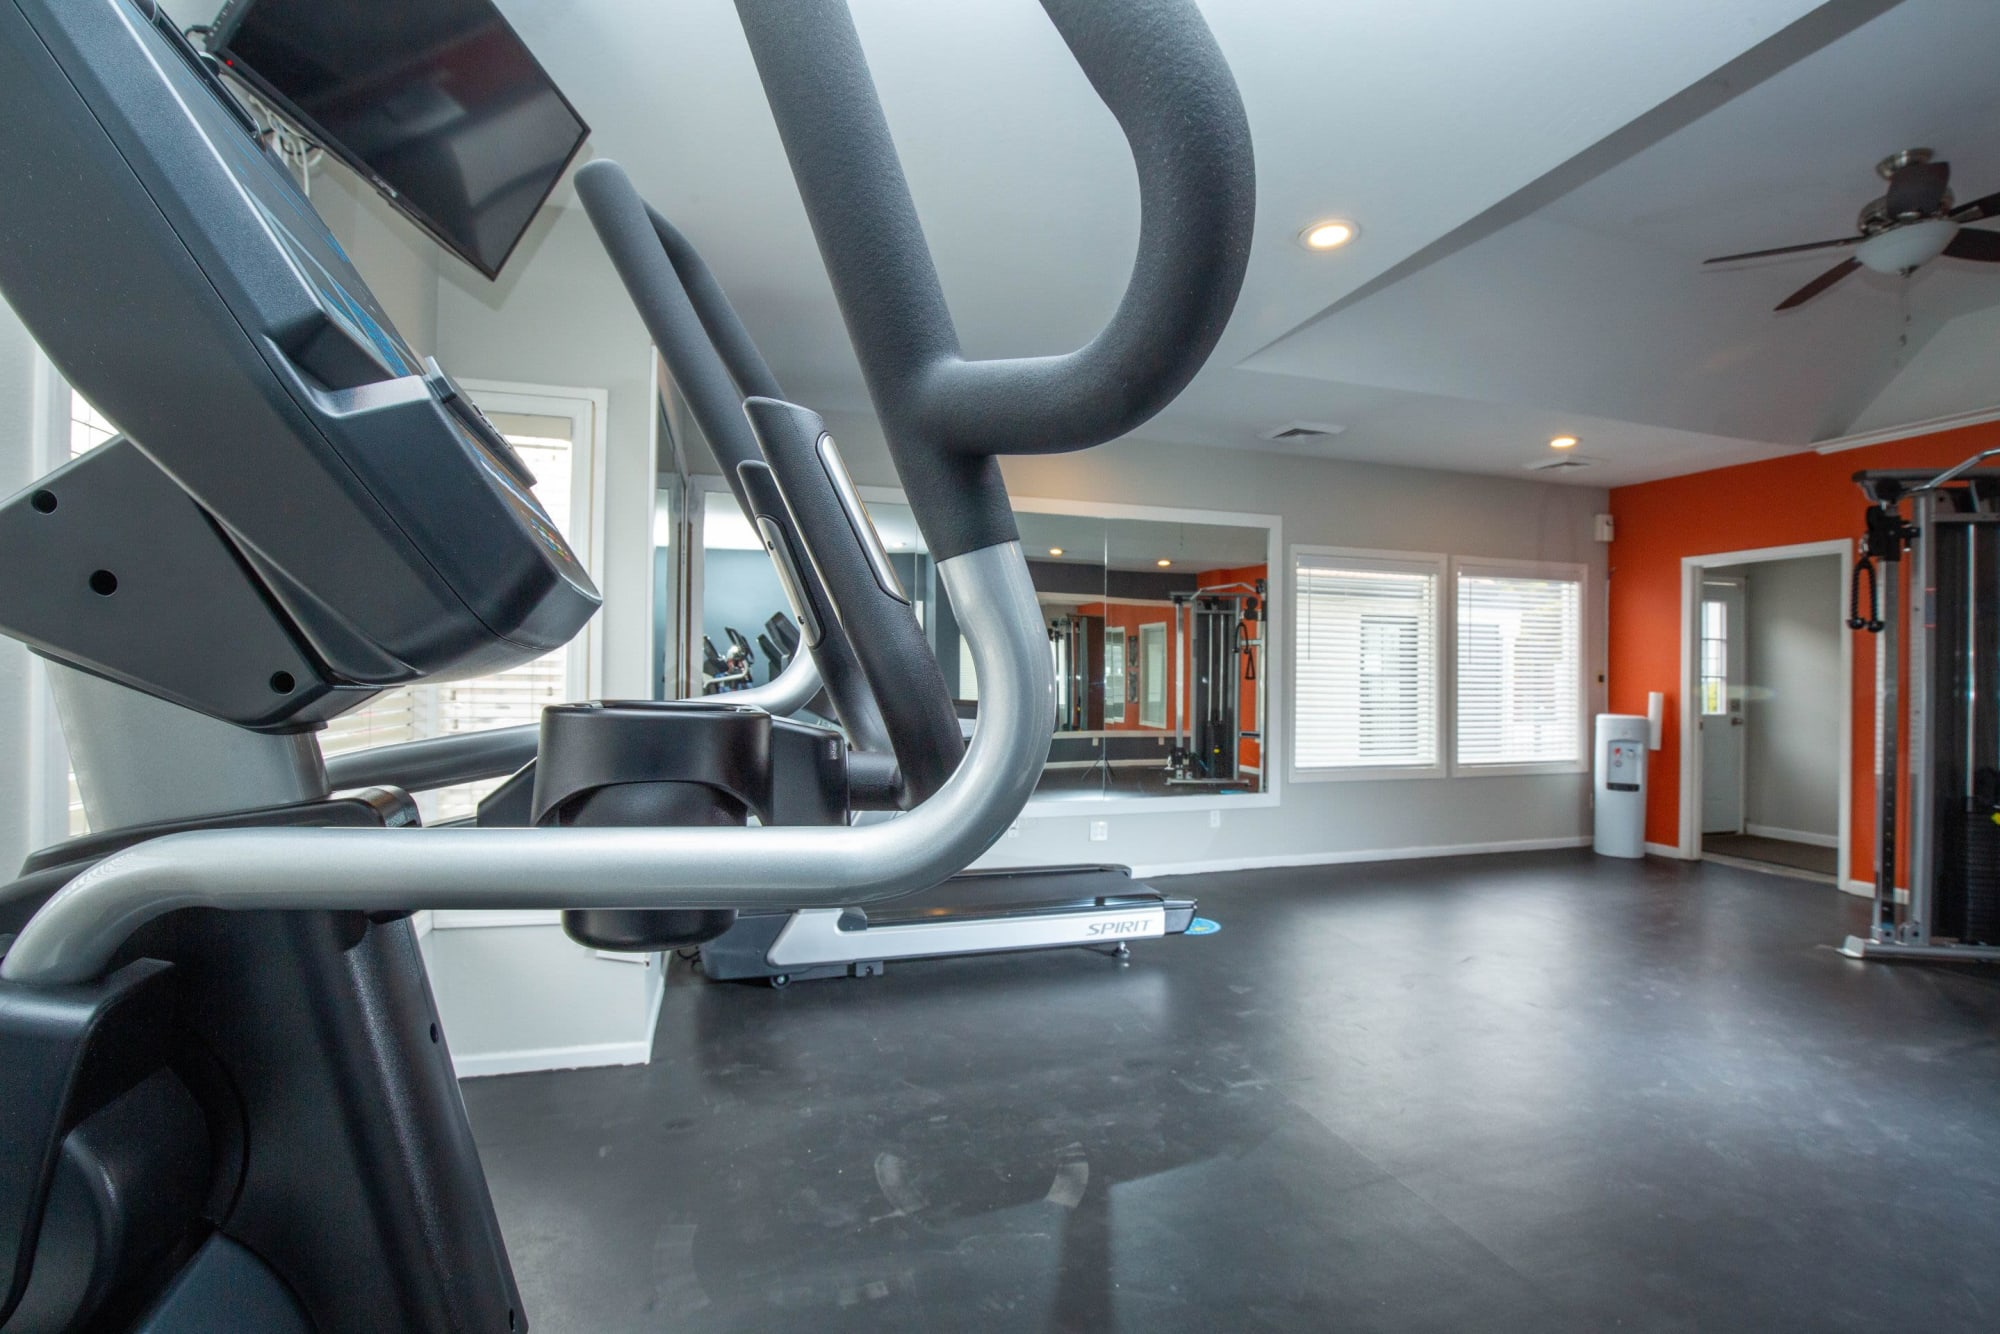 Fitness Center, Open Room Lots of Space at Shadowbrook Apartments in West Valley City, Utah